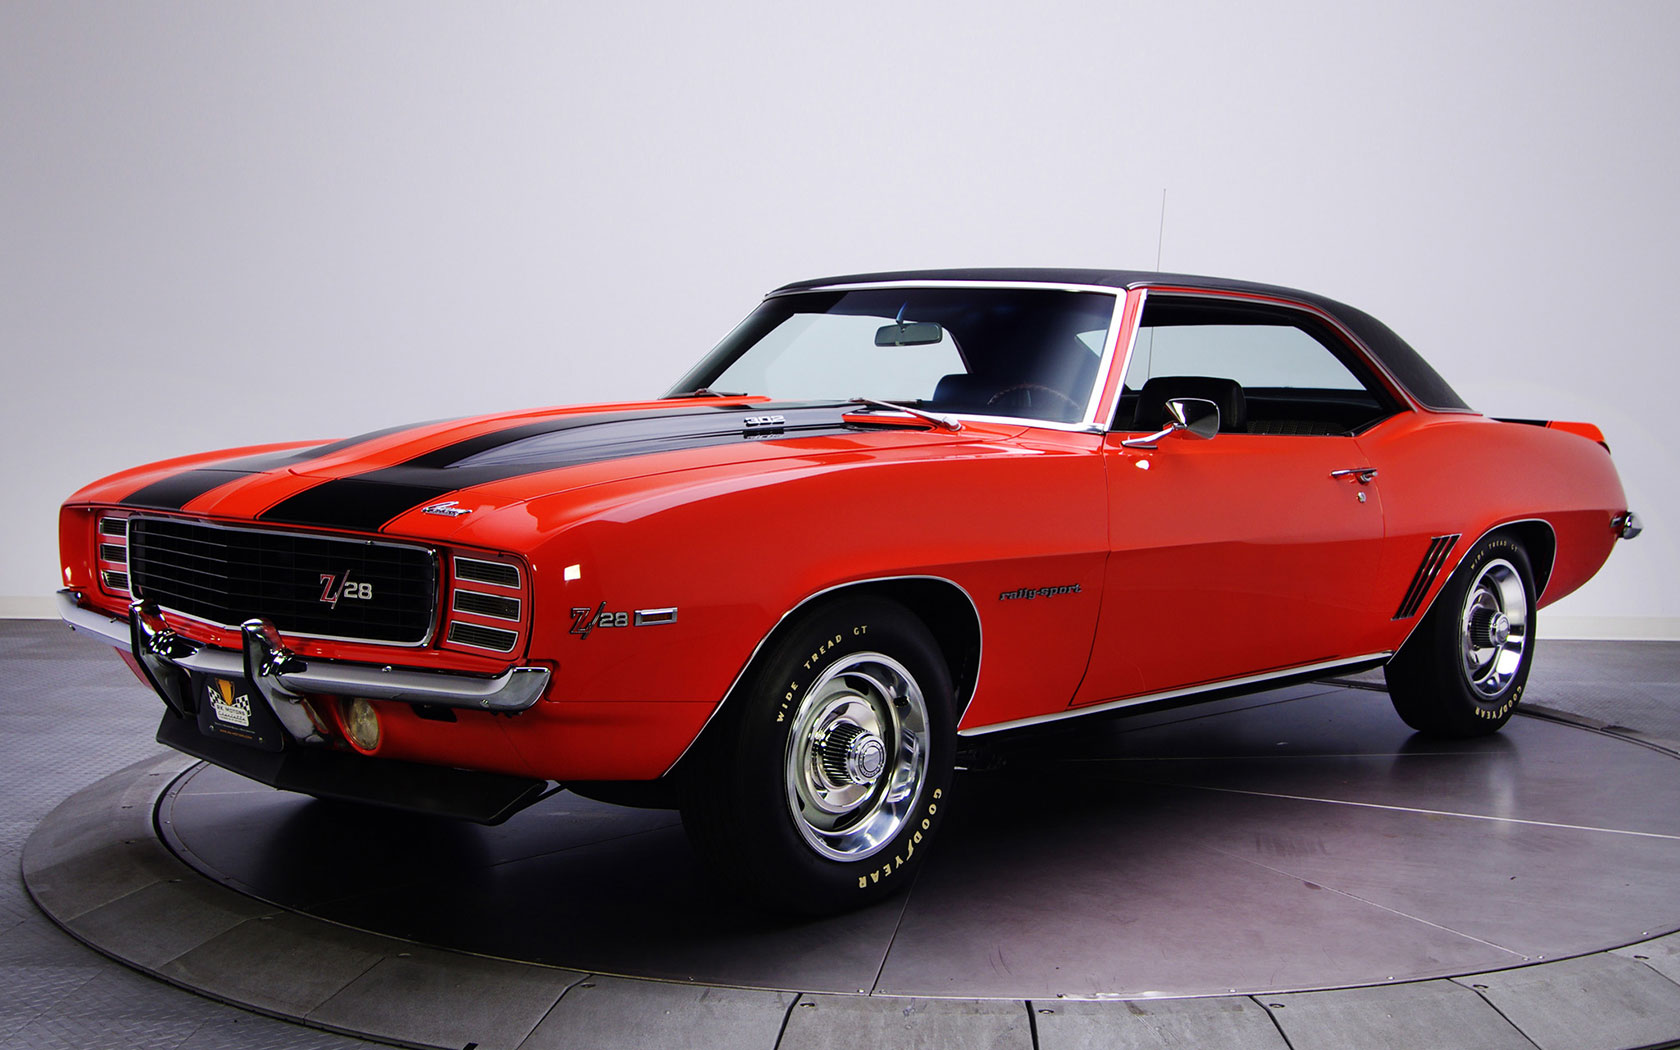 Muscle Car Wallpaper Camaro 5406 Hd Wallpapers in Cars   Imagescicom 1680x1050